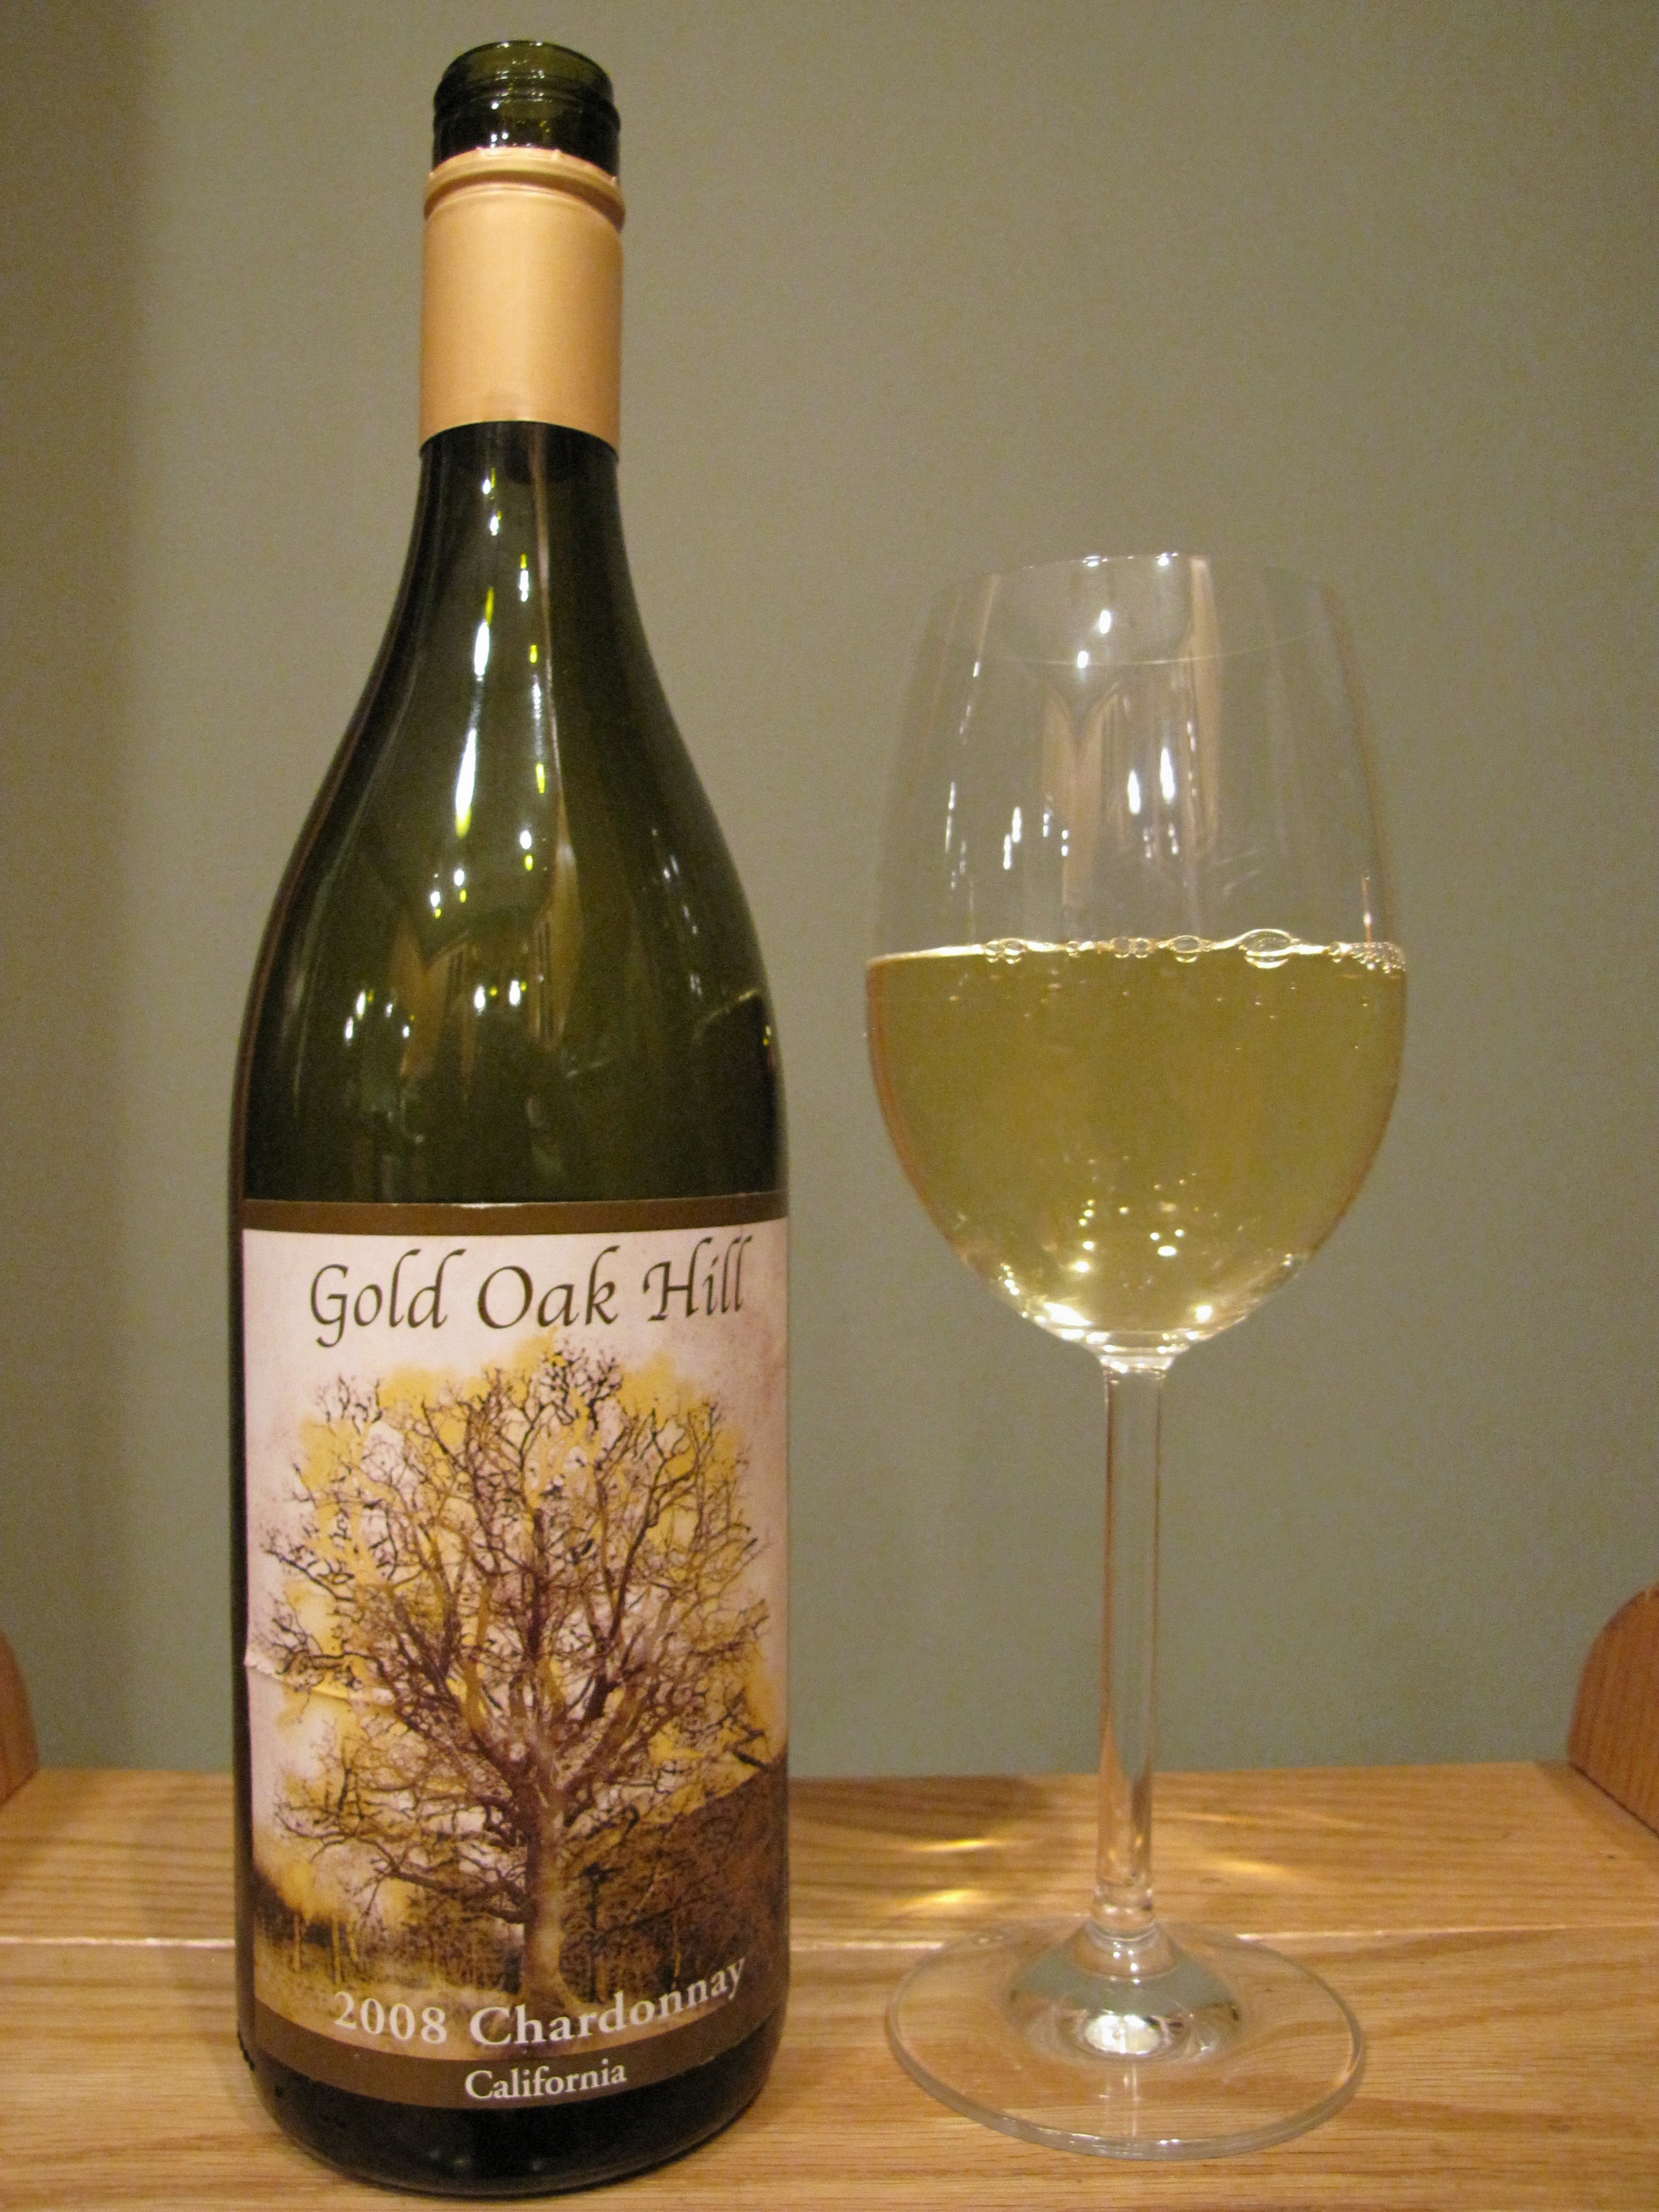 Gold Oak Hill Chardonnay (2008)